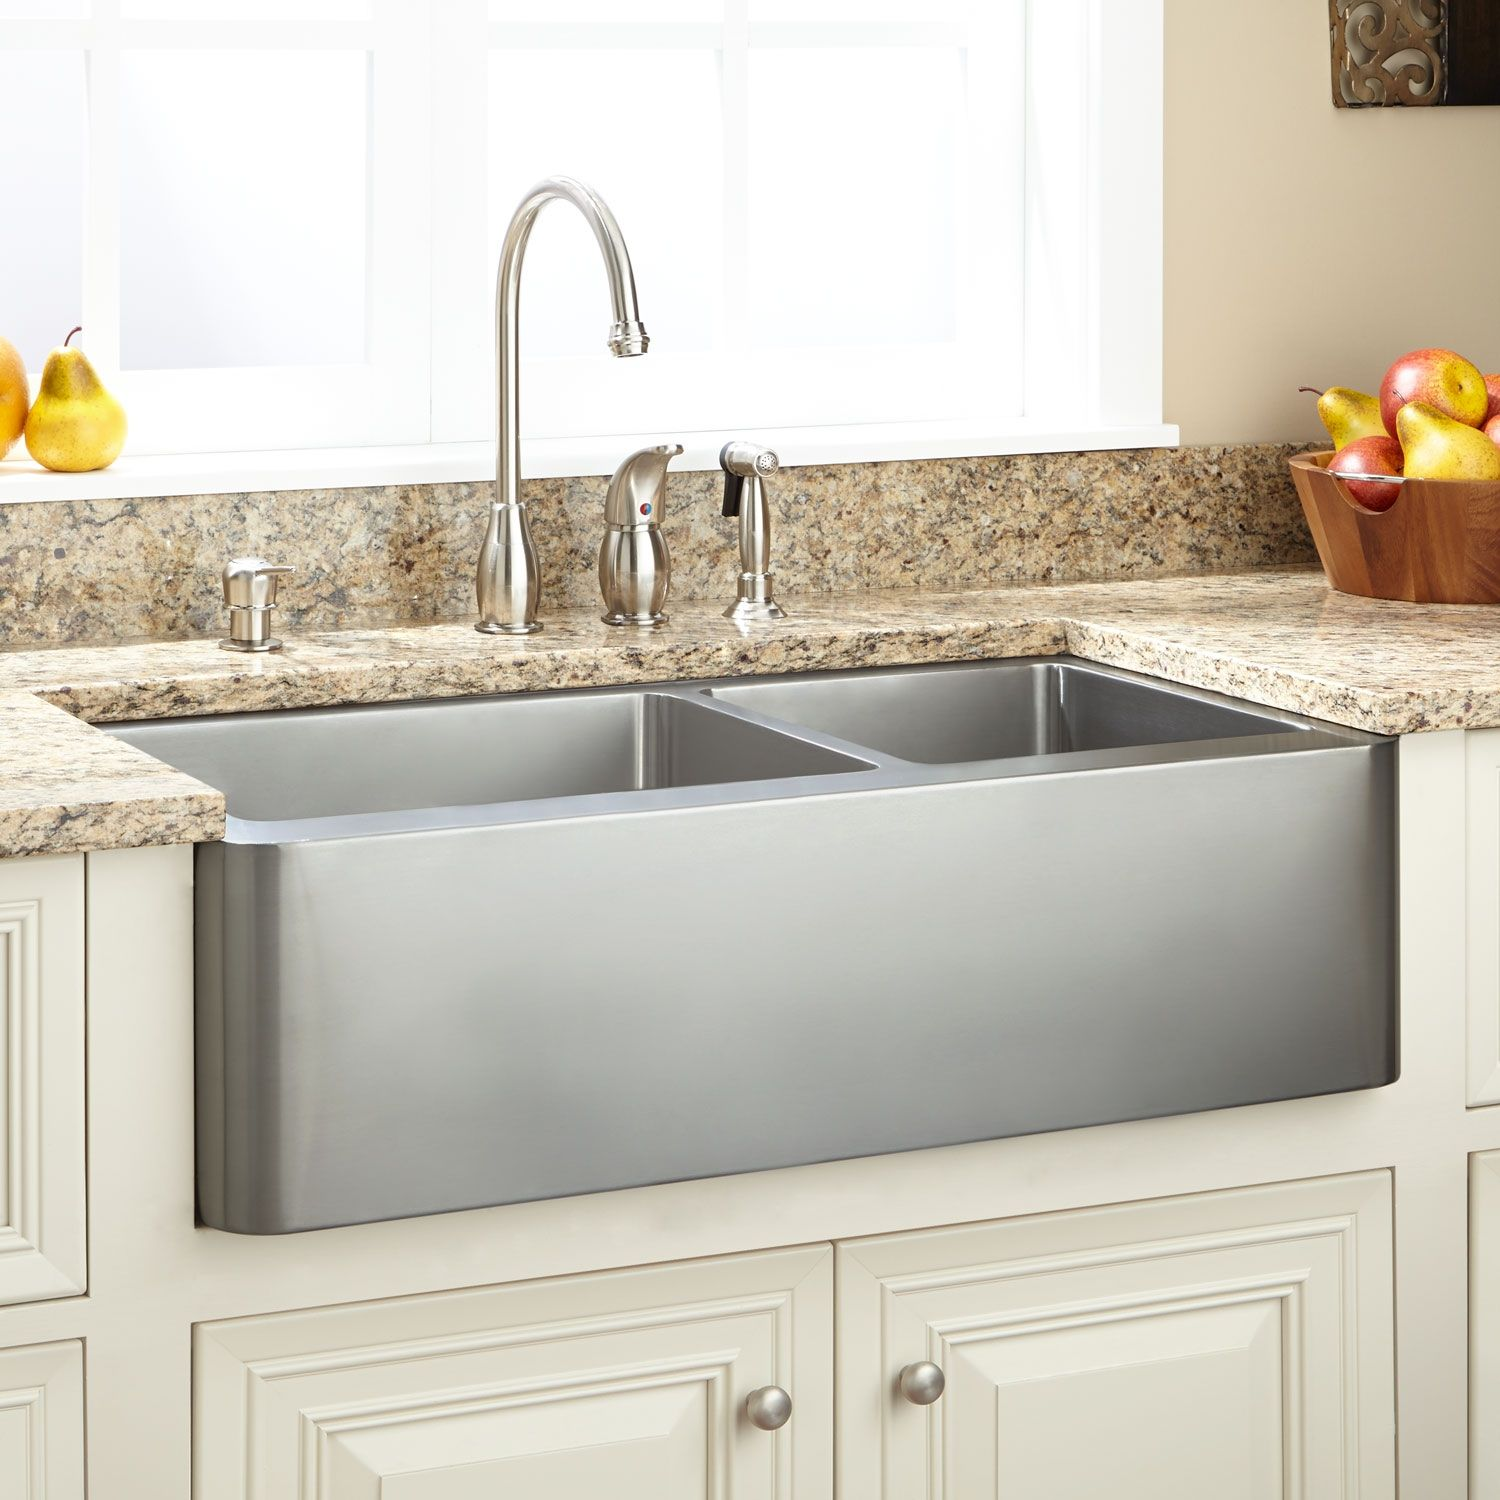 33 Hazelton 60 40 Offset Double Bowl Stainless Steel Farmhouse Sink Signature Hardware Farmhouse Sink Kitchen Stainless Farmhouse Sink Stainless Steel Farmhouse Sink